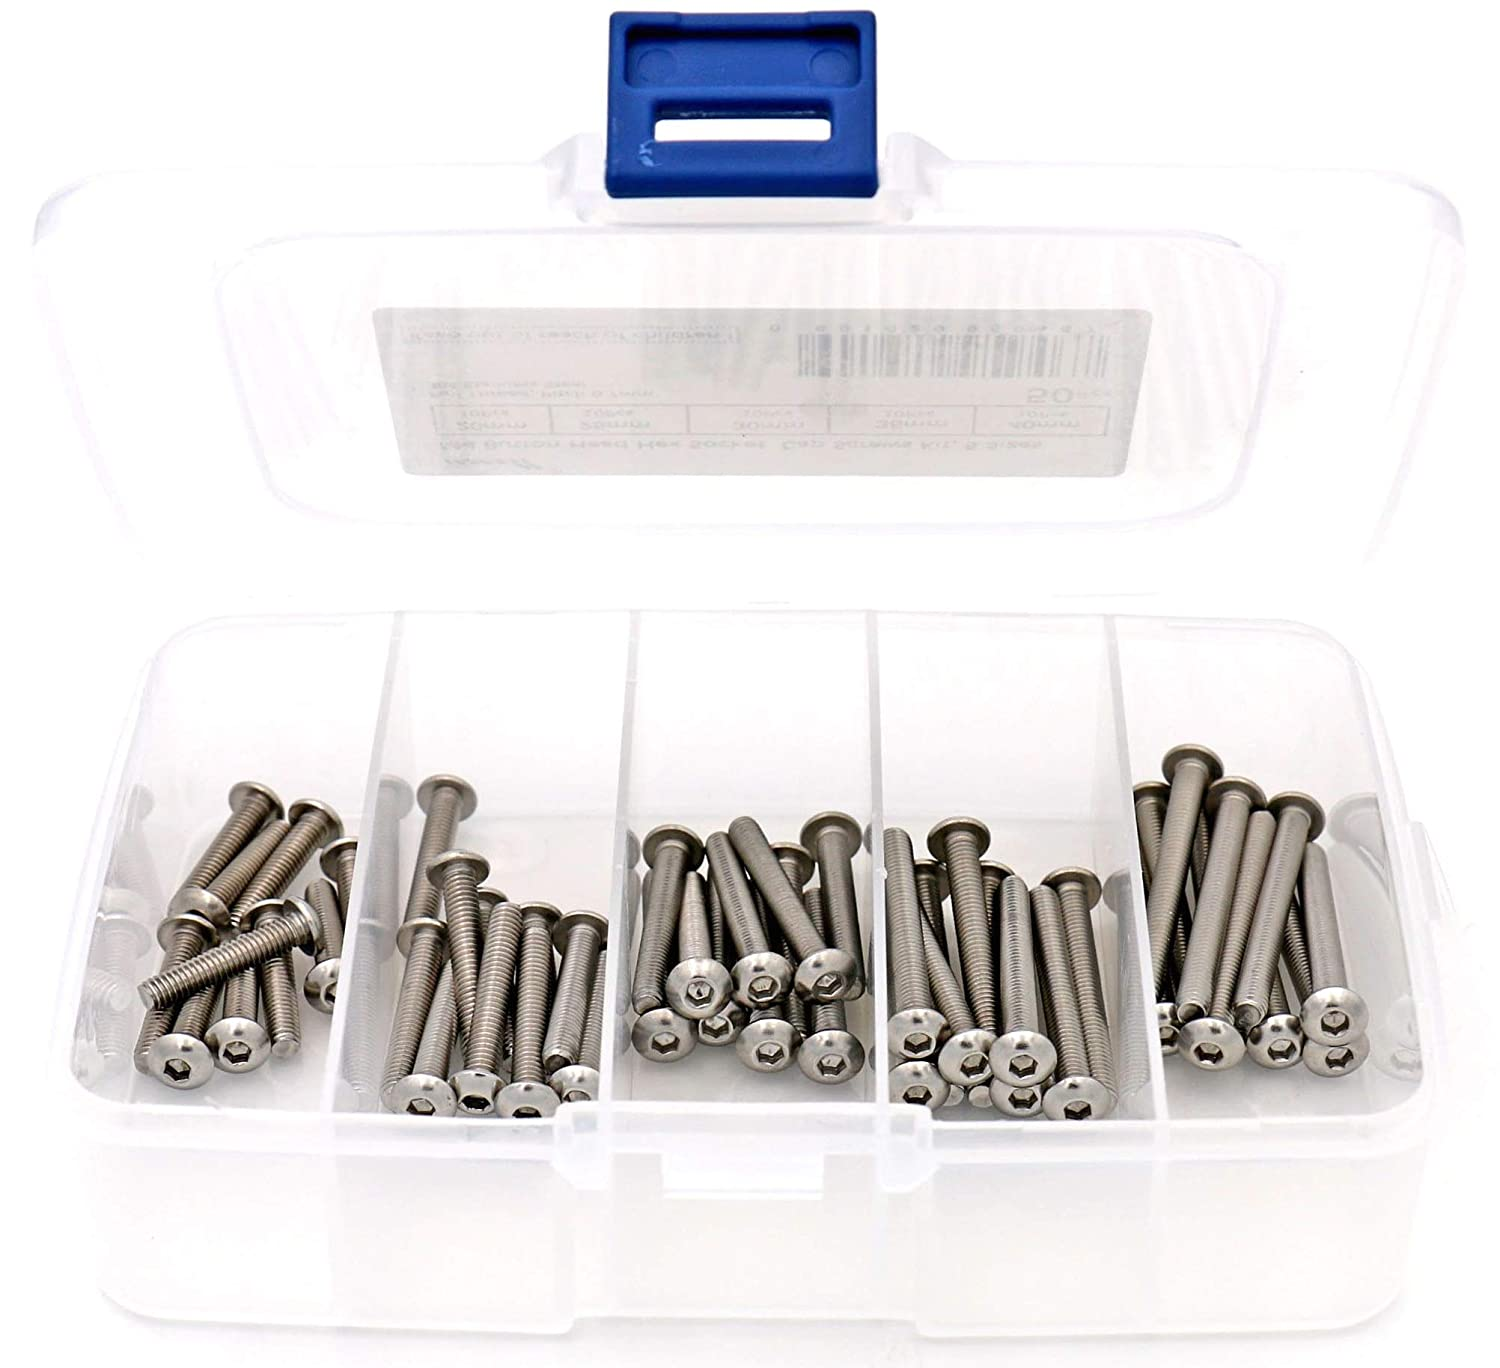 Fully Threaded iExcell 50 Pcs M4 x 20mm//25mm//30mm//35mm//40mm Stainless Steel 304 Internal Hex Drives Button Head Cap Screws Kit